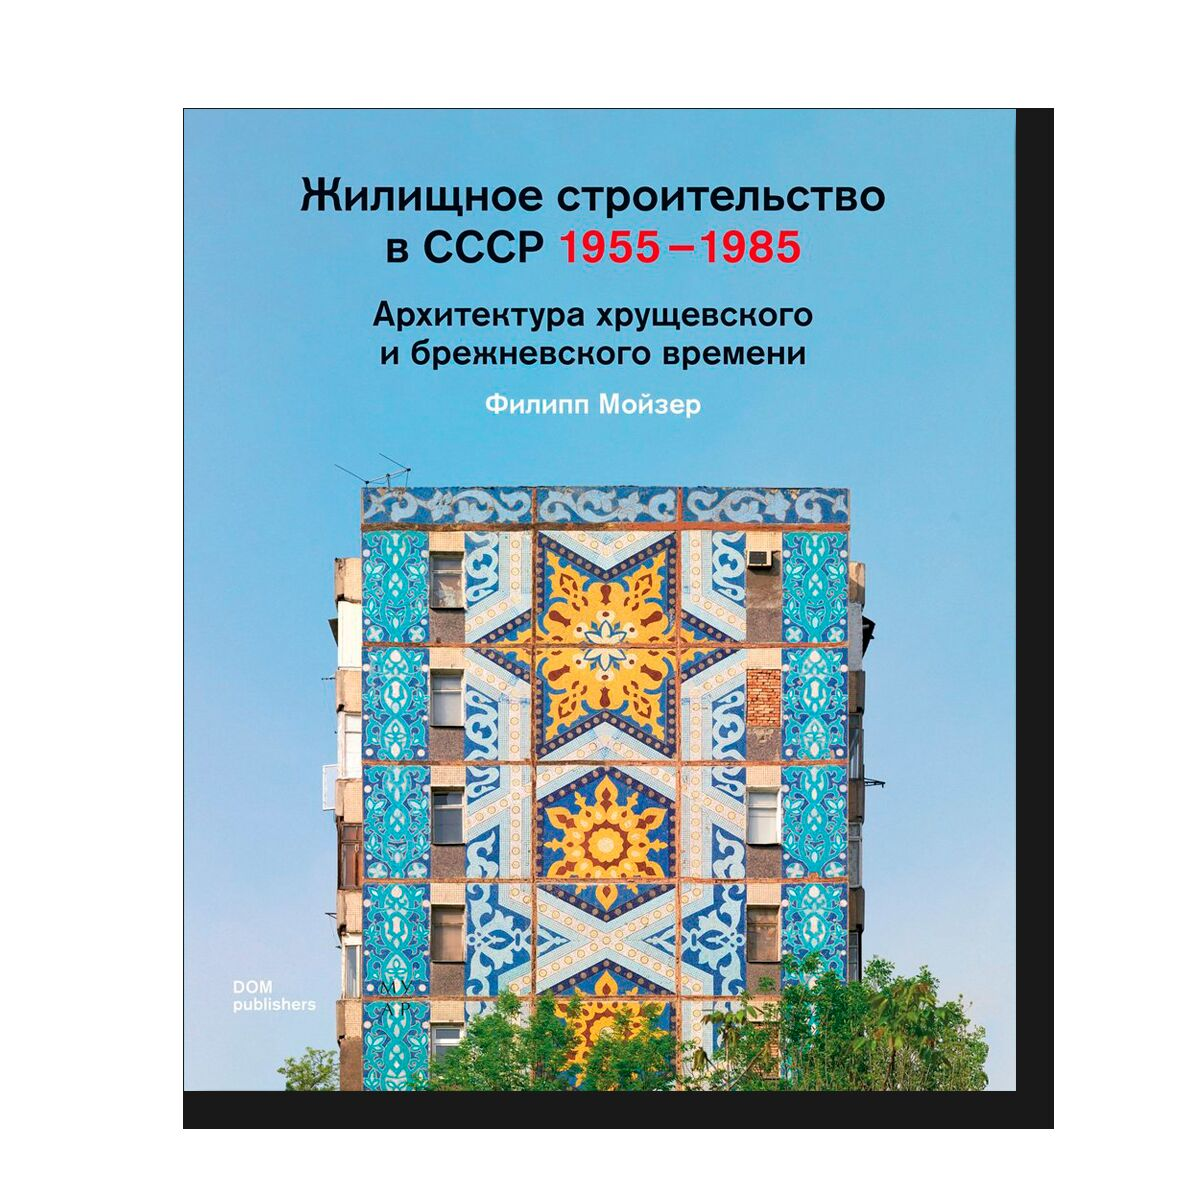 Housebuilding in the USSR in the 1955-1985